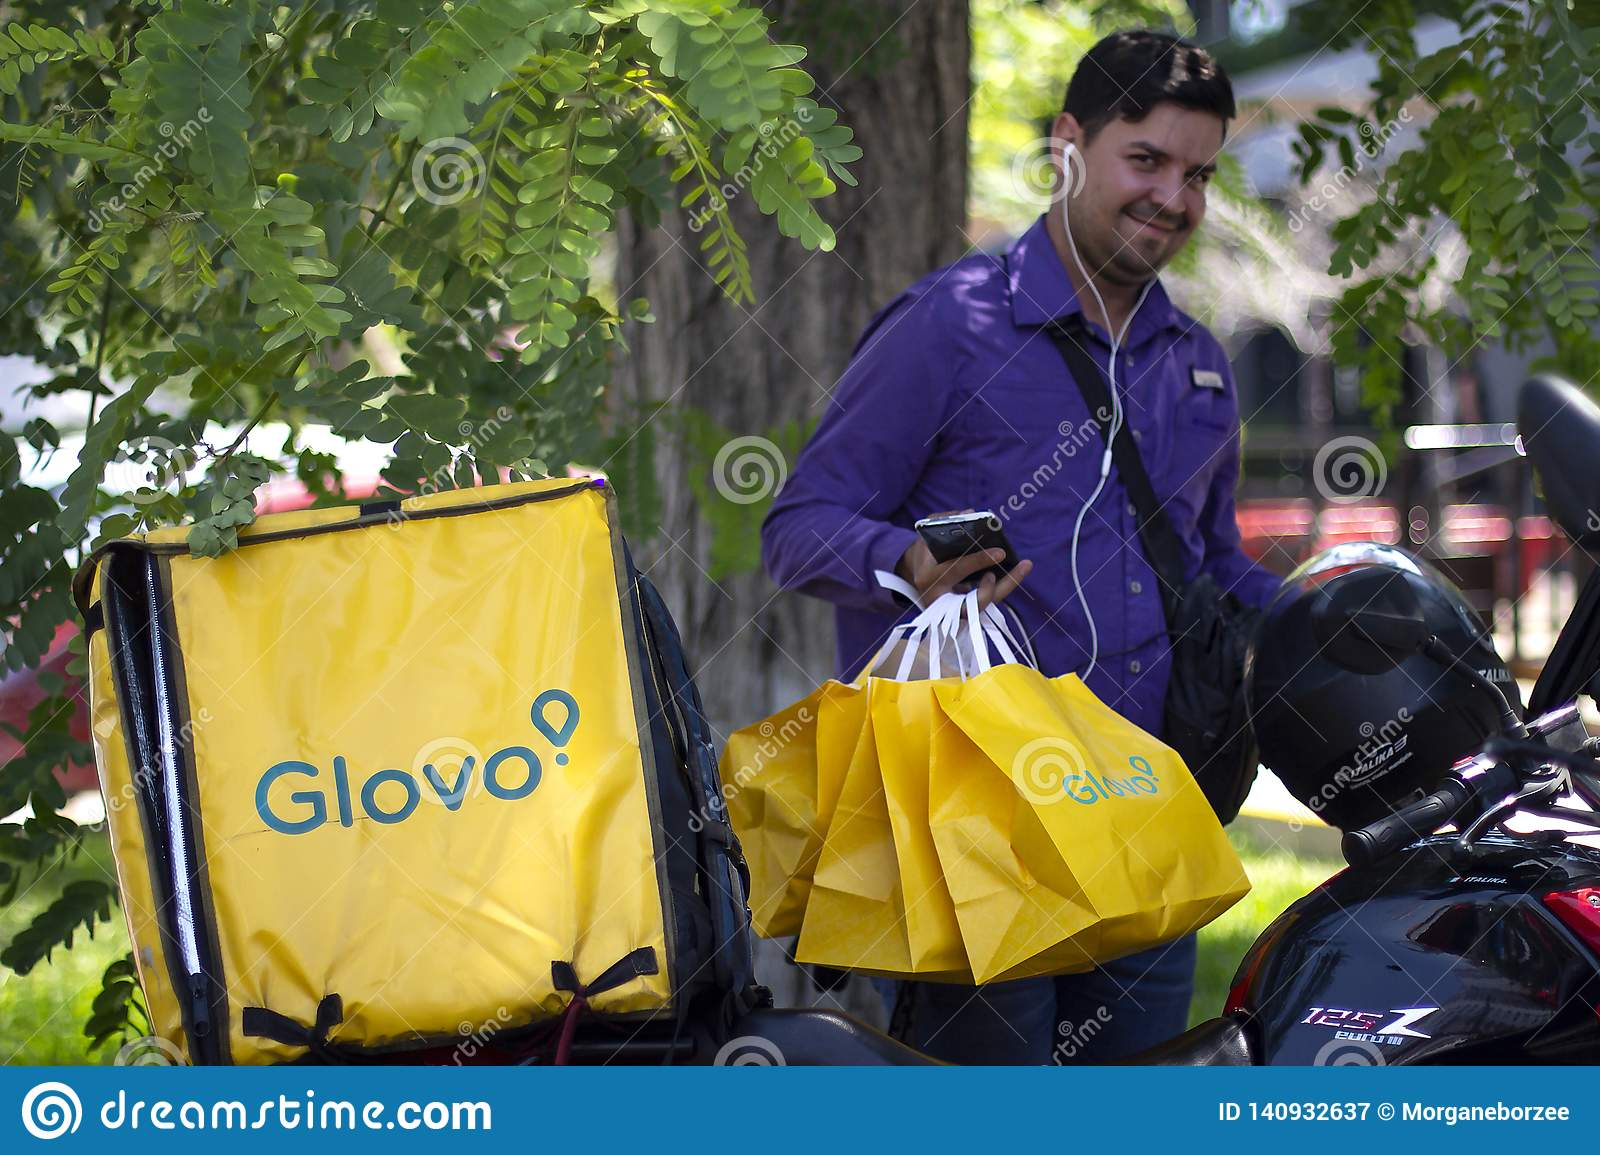 Man with Glovo bags working at food delivery service